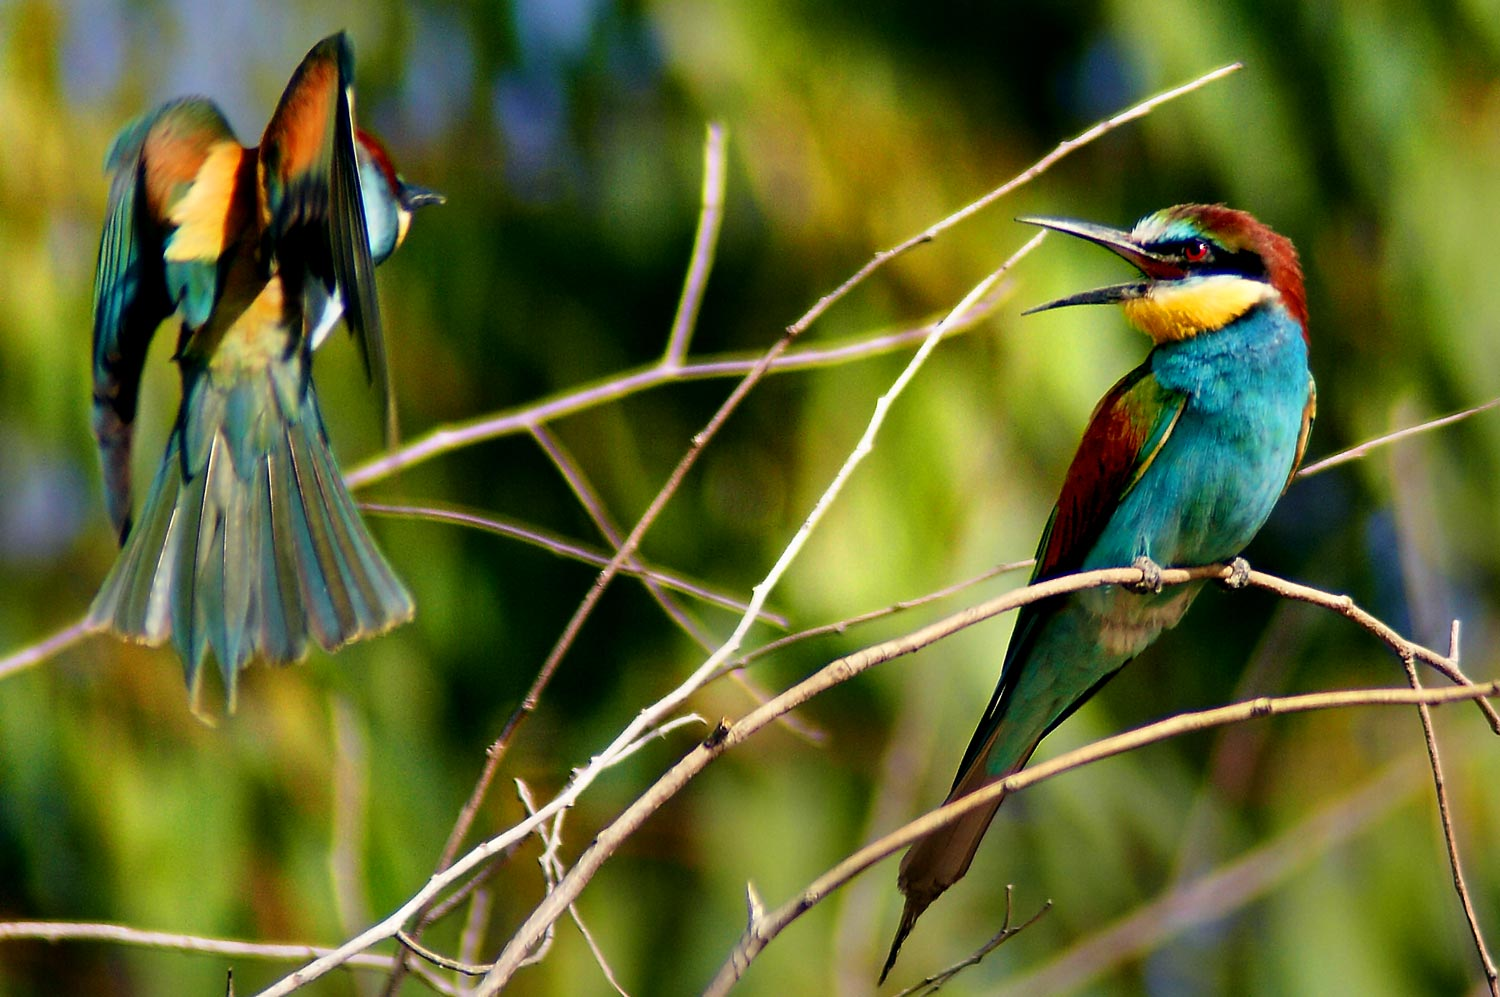 European bee eater size - photo#18